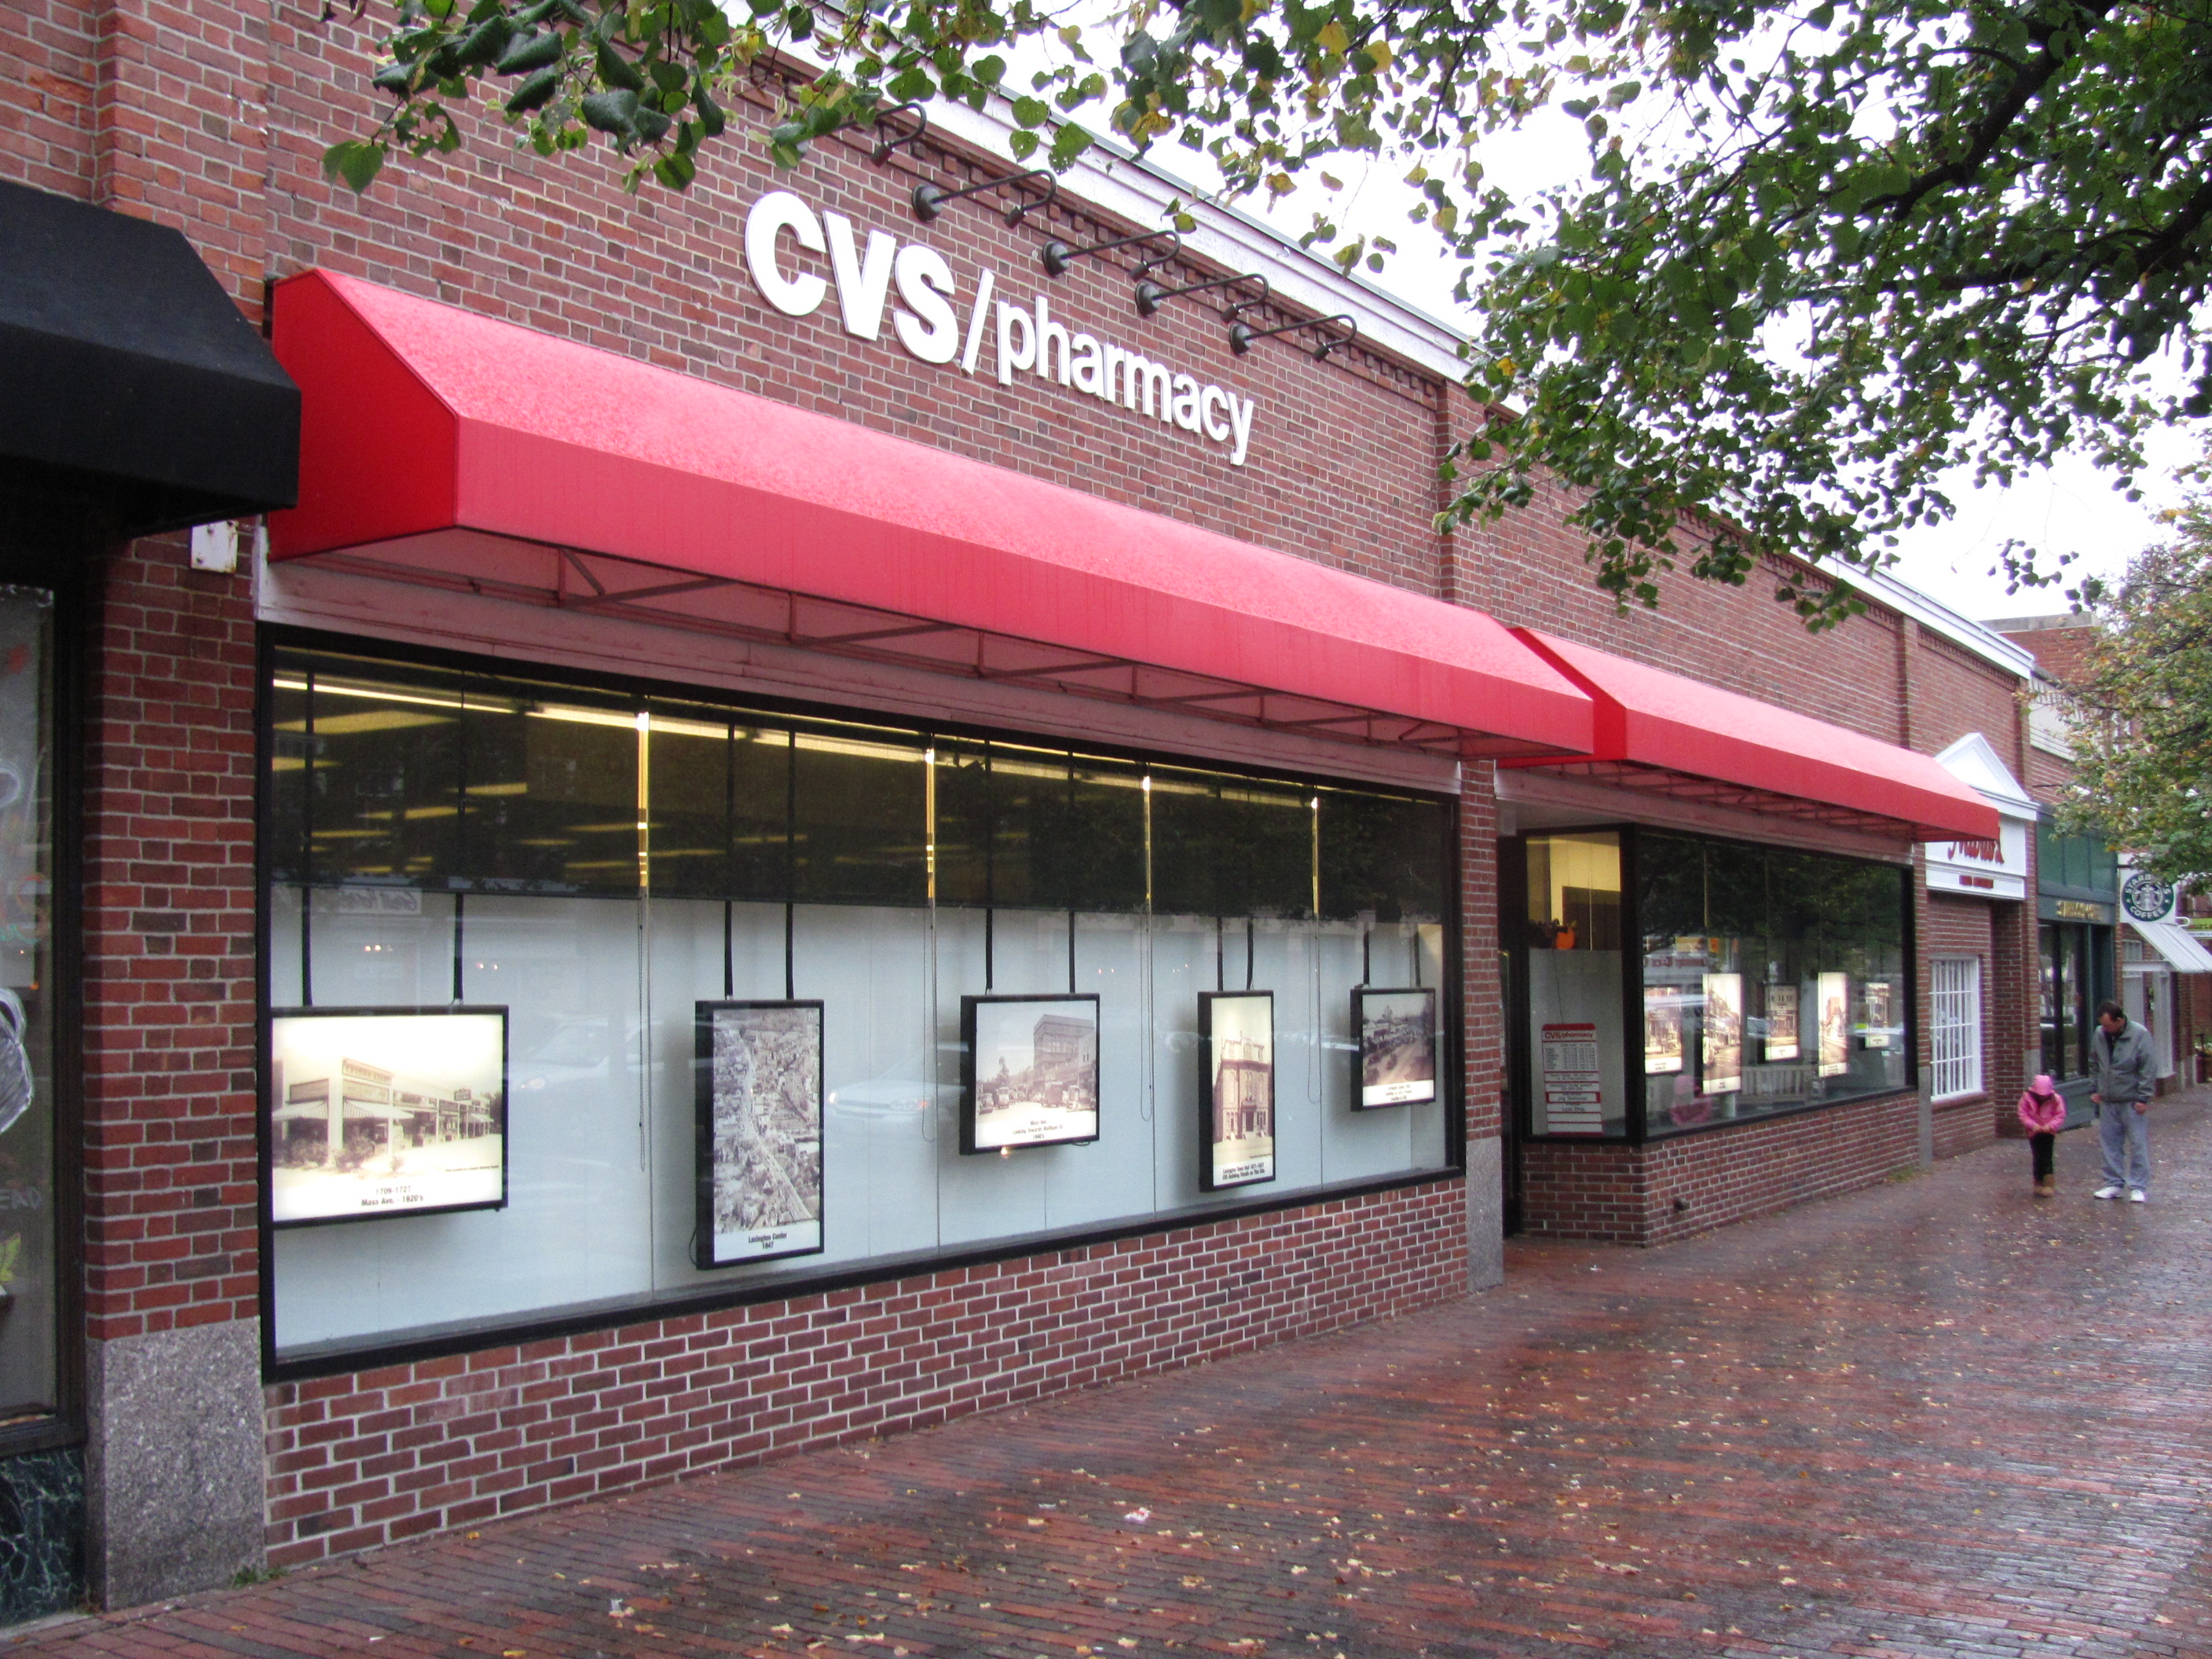 CVS Takes an Ethical Approach to Opioids – So What?